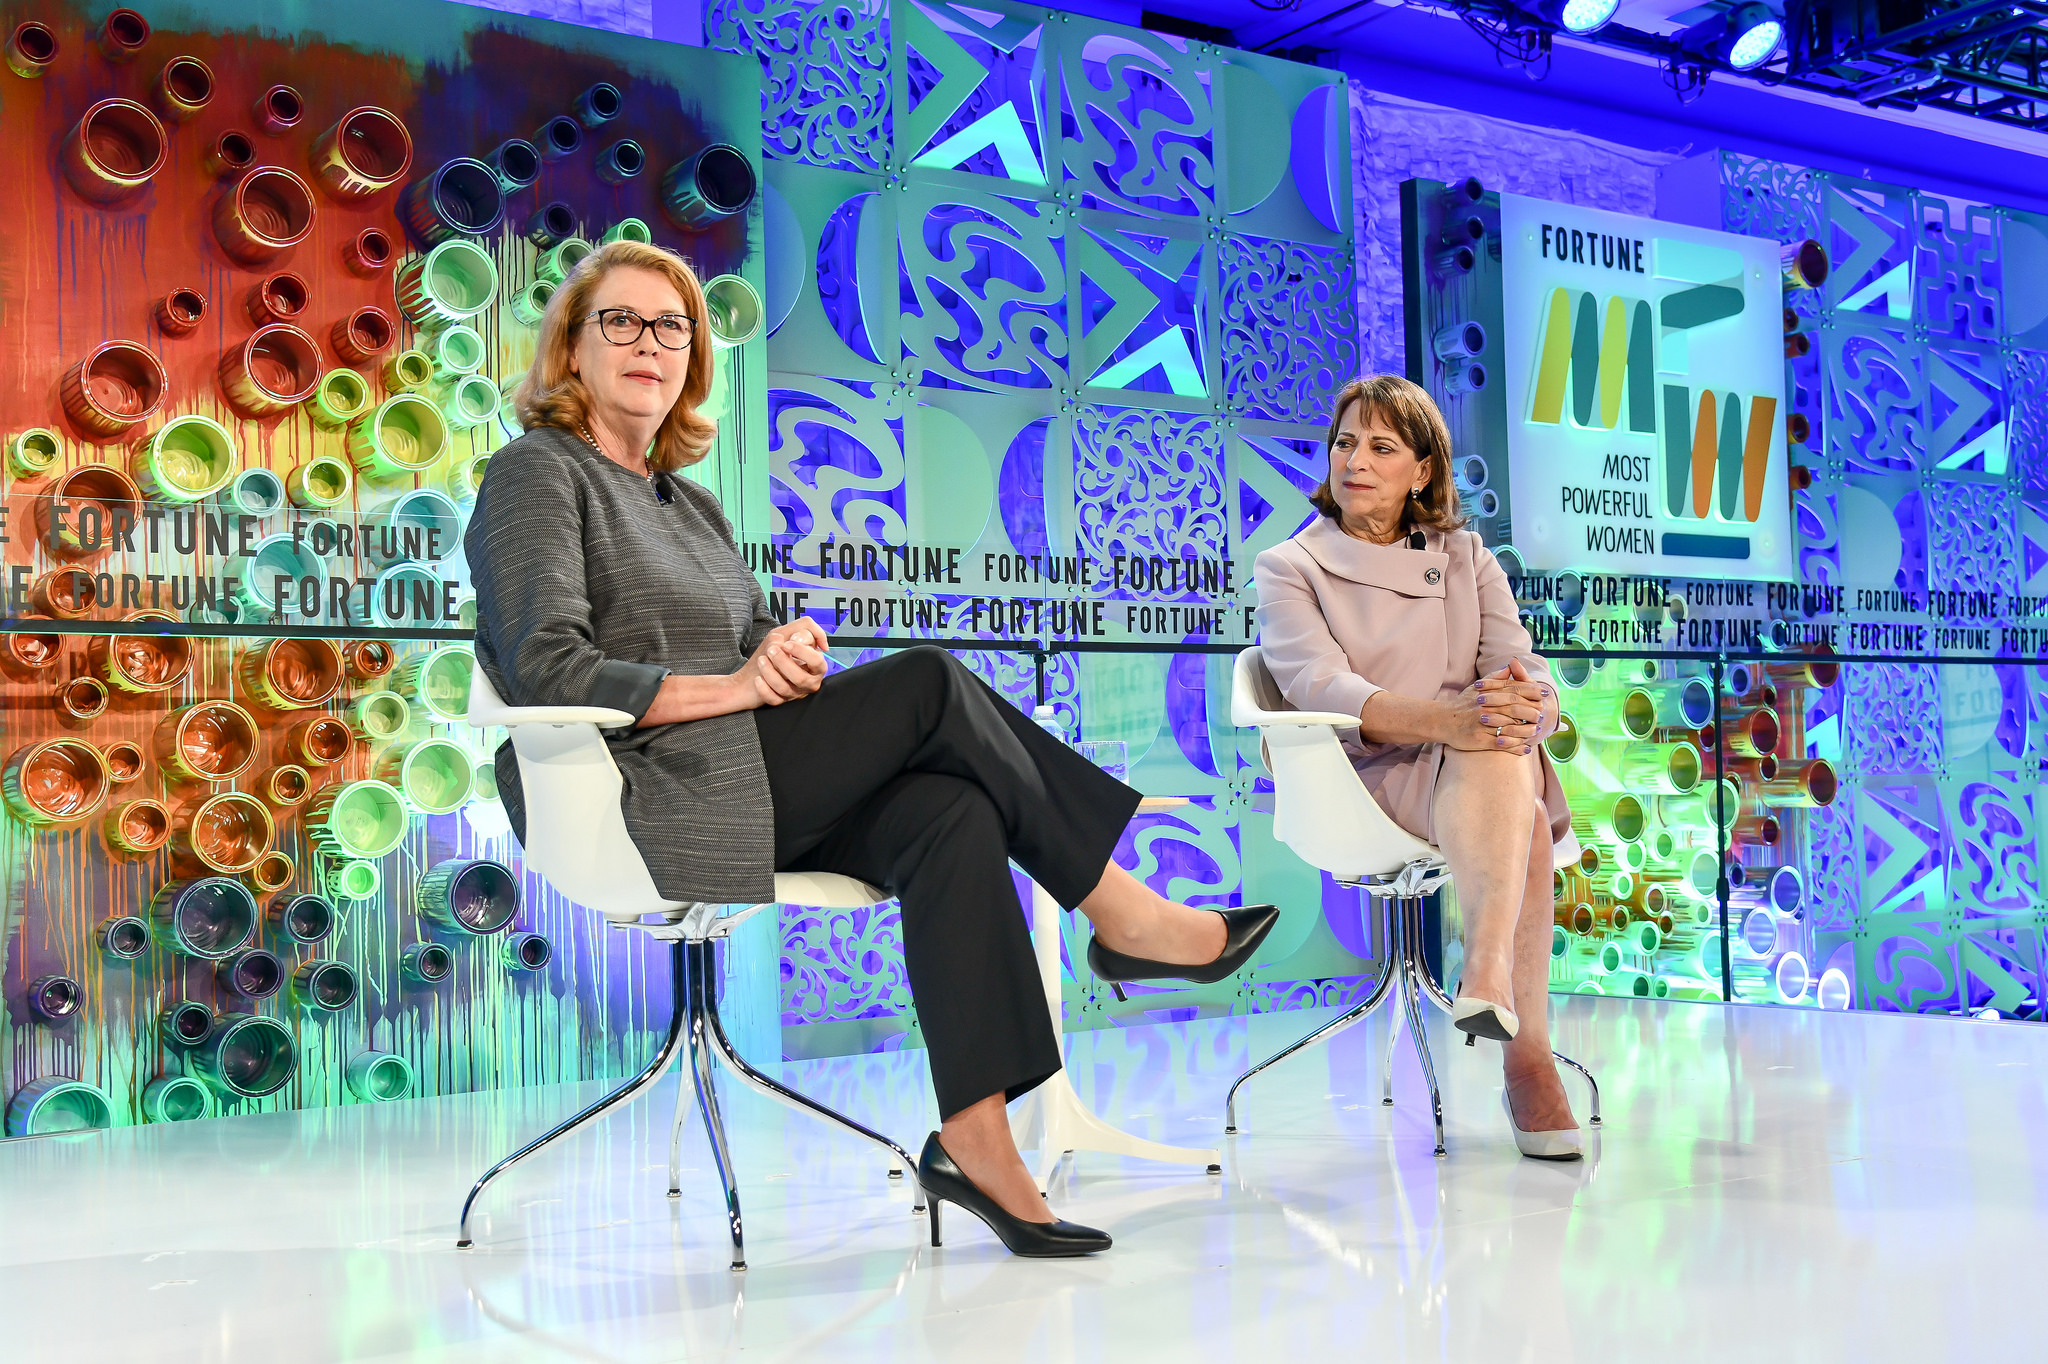 Jami Miscik (left), CEO of geopolitical consulting firm Kissinger Associates, said China and Russia pose the biggest threat to U.S. national security in a discussion with Lori Esposito Murray (right), adjunct senior fellow at the Council on Foreign Relations, at Fortune's MPW Summit in Laguna Niguel, California.